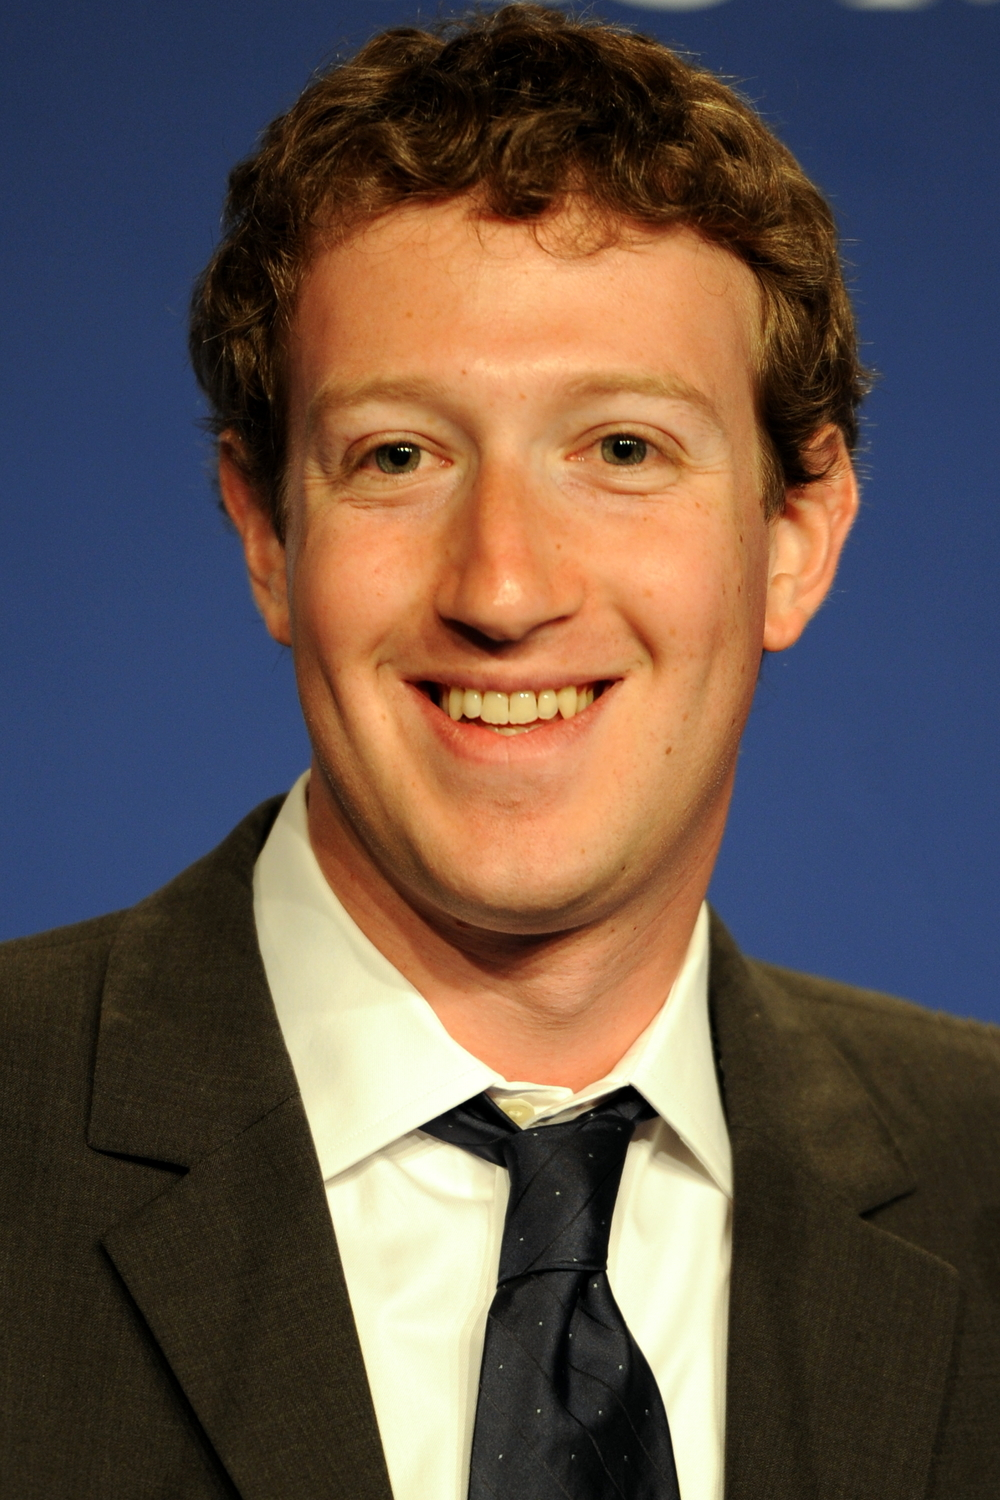 Facebook CEO Mark Zuckerberg. Credit: Guillaume Paumier via Wikimedia Commons.